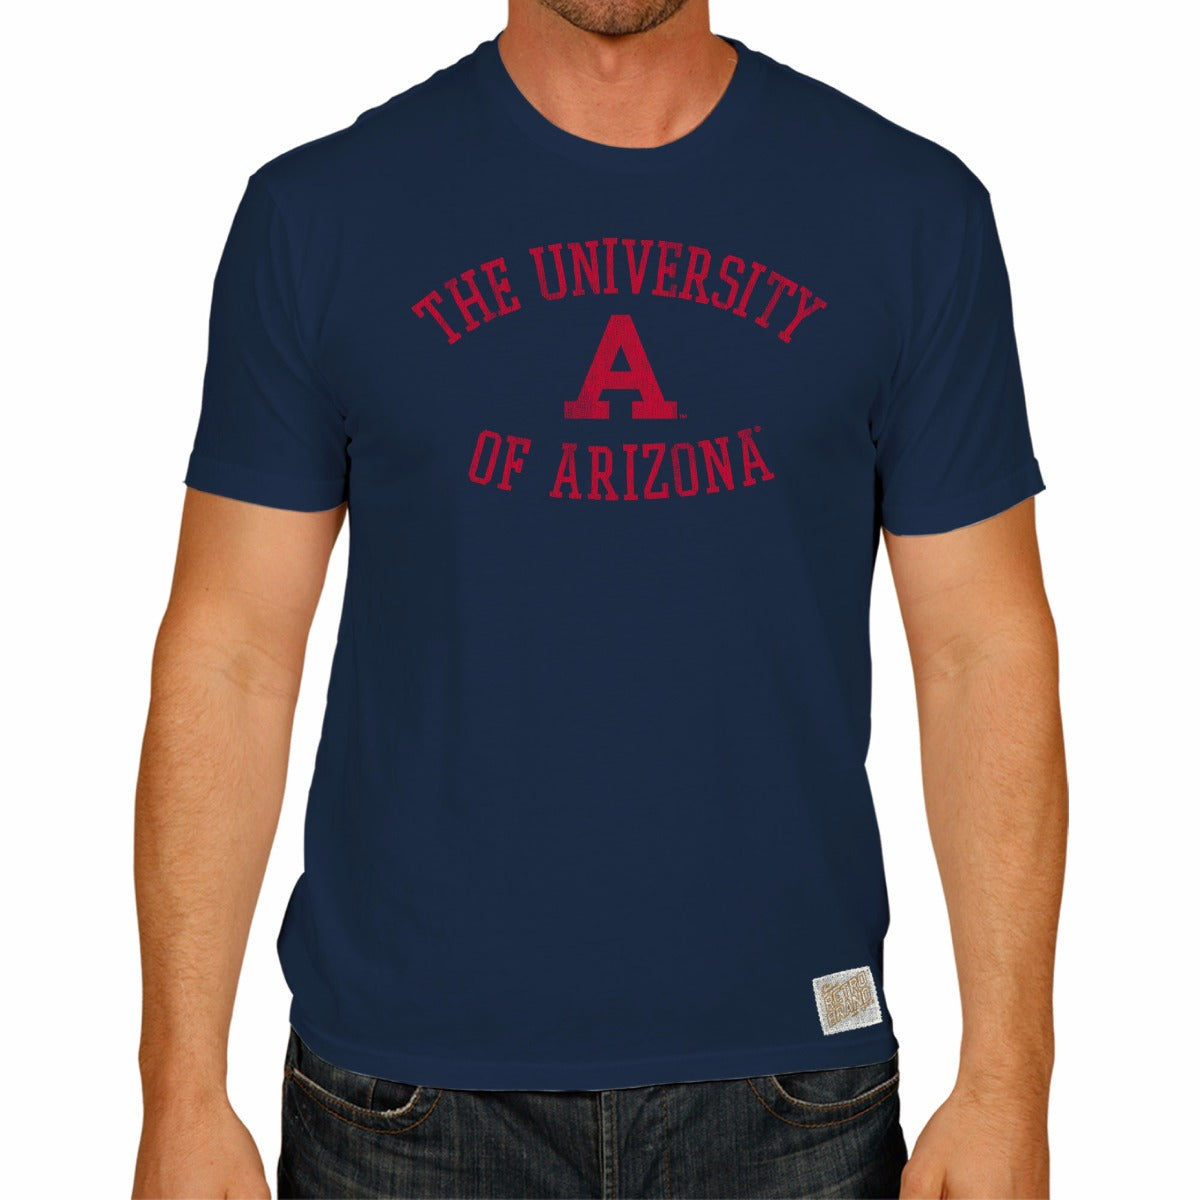 Arizona Wildcats Men's Short Sleeve Vintage Tee